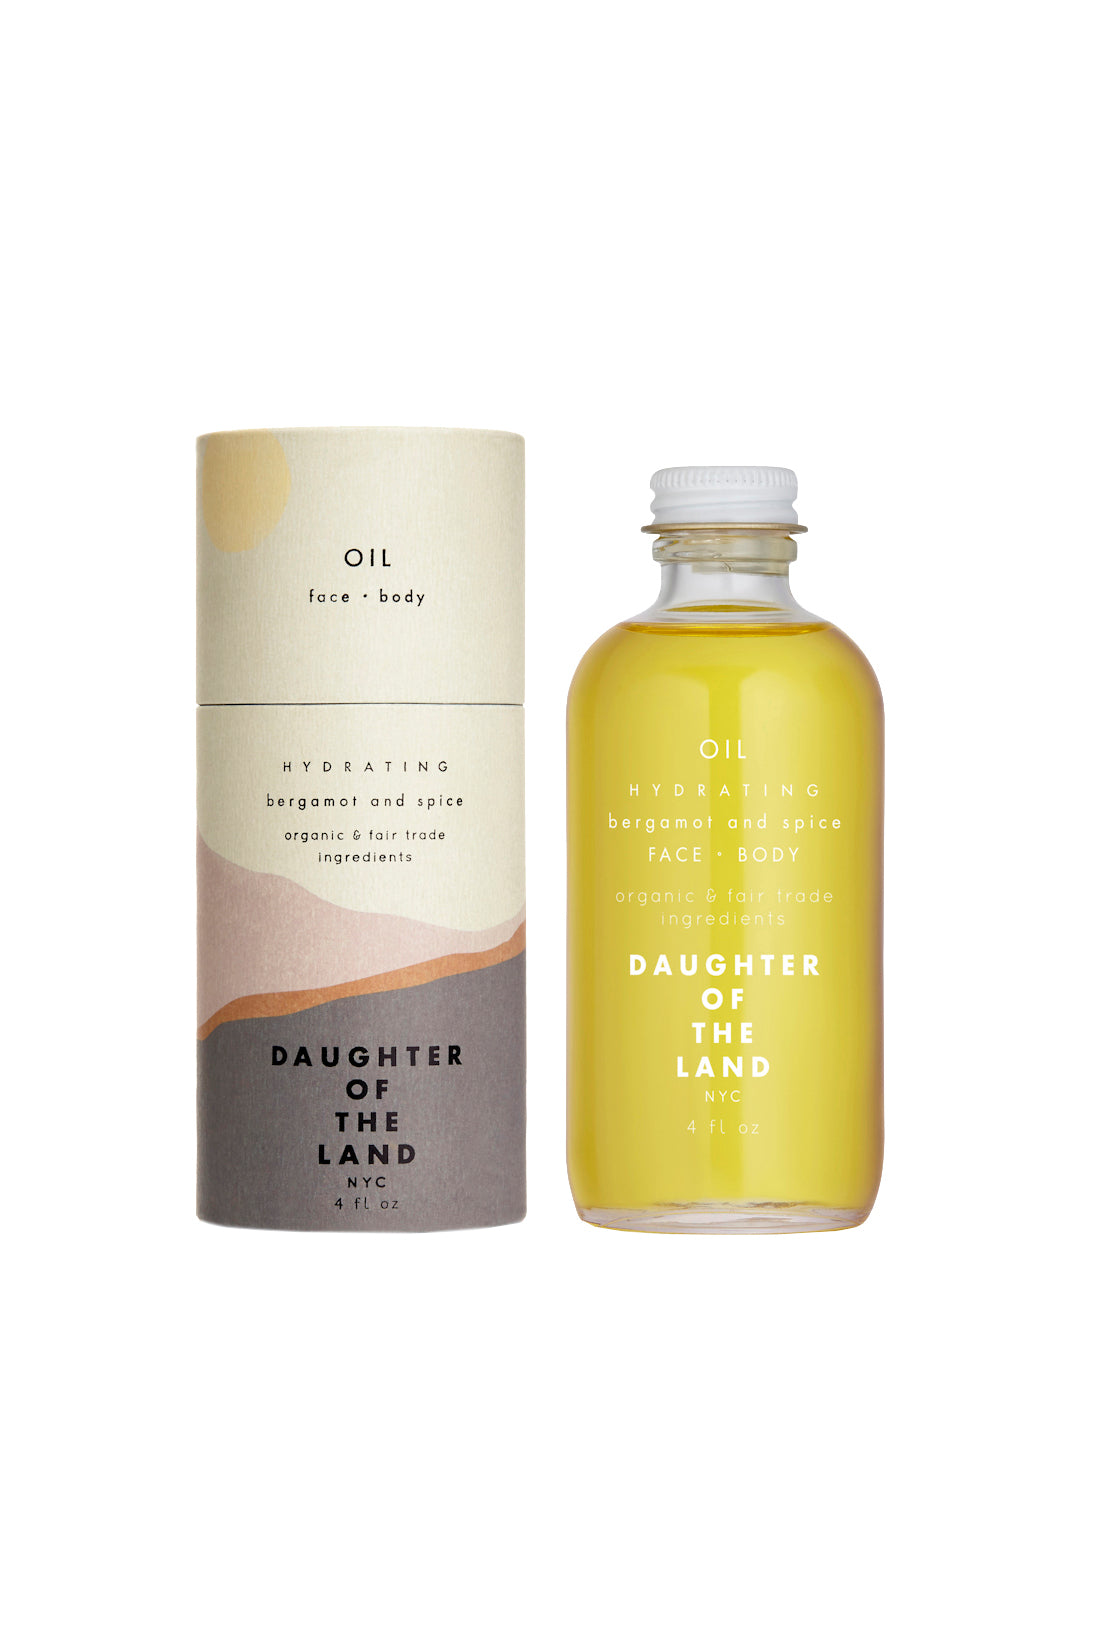 Daughter of the Land - Hydrating Face & Body Oil